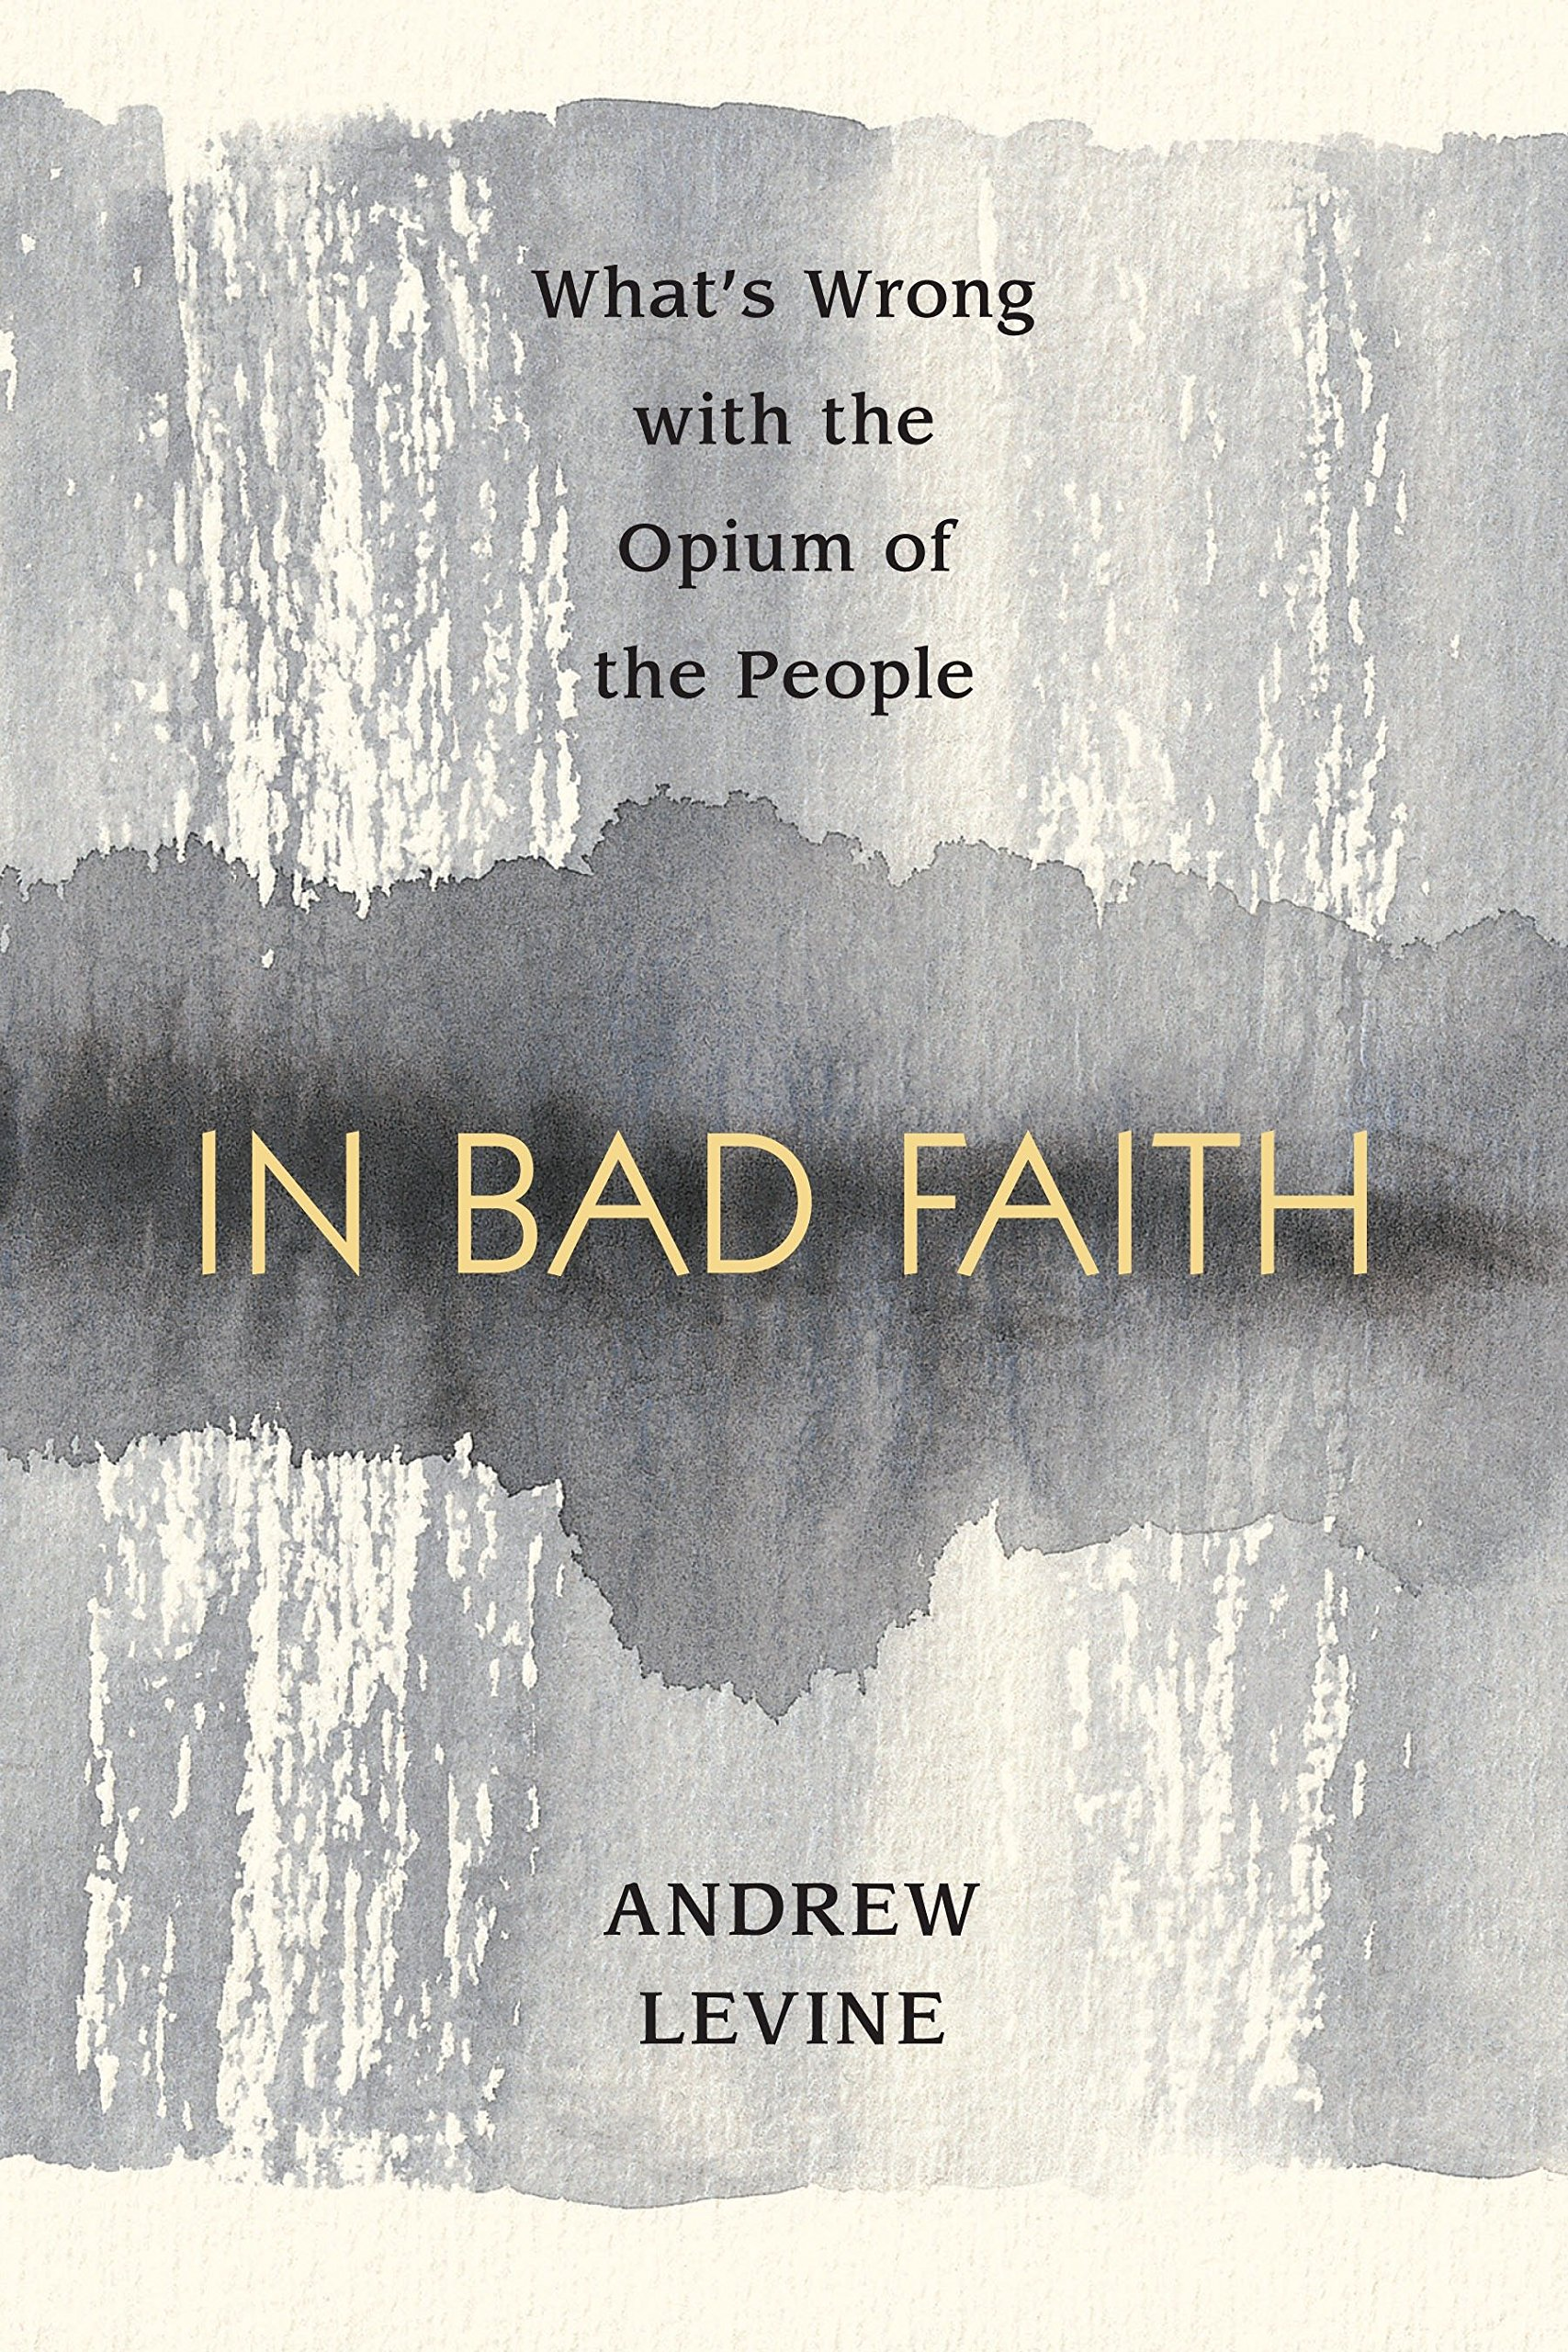 Read Online In Bad Faith: What's Wrong With the Opium of the People PDF